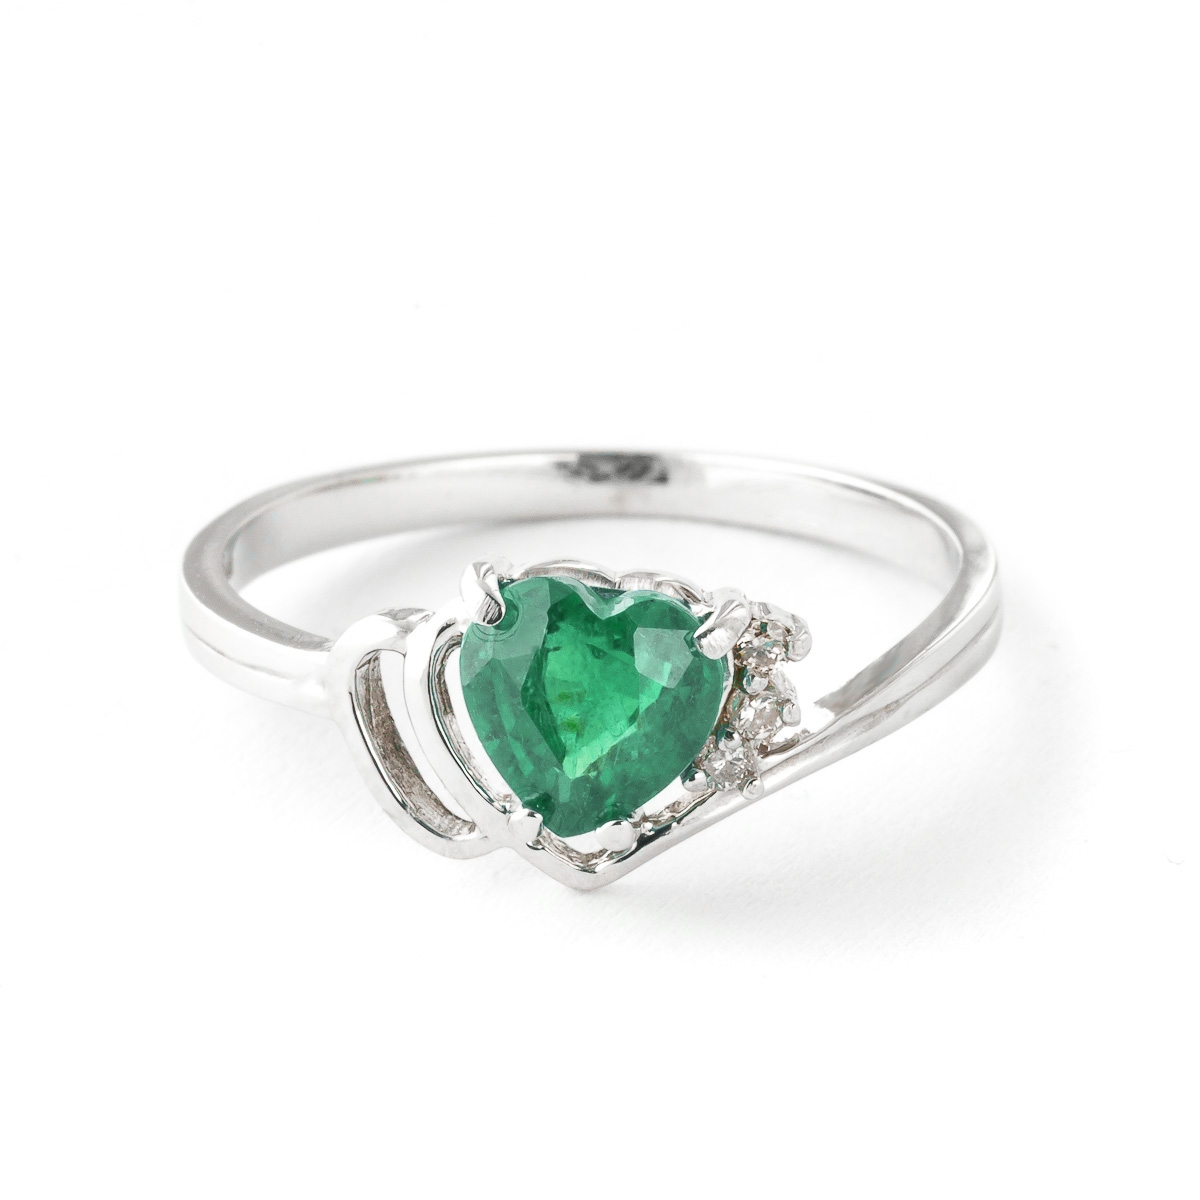 Emerald & Diamond Devotion Ring in 9ct White Gold